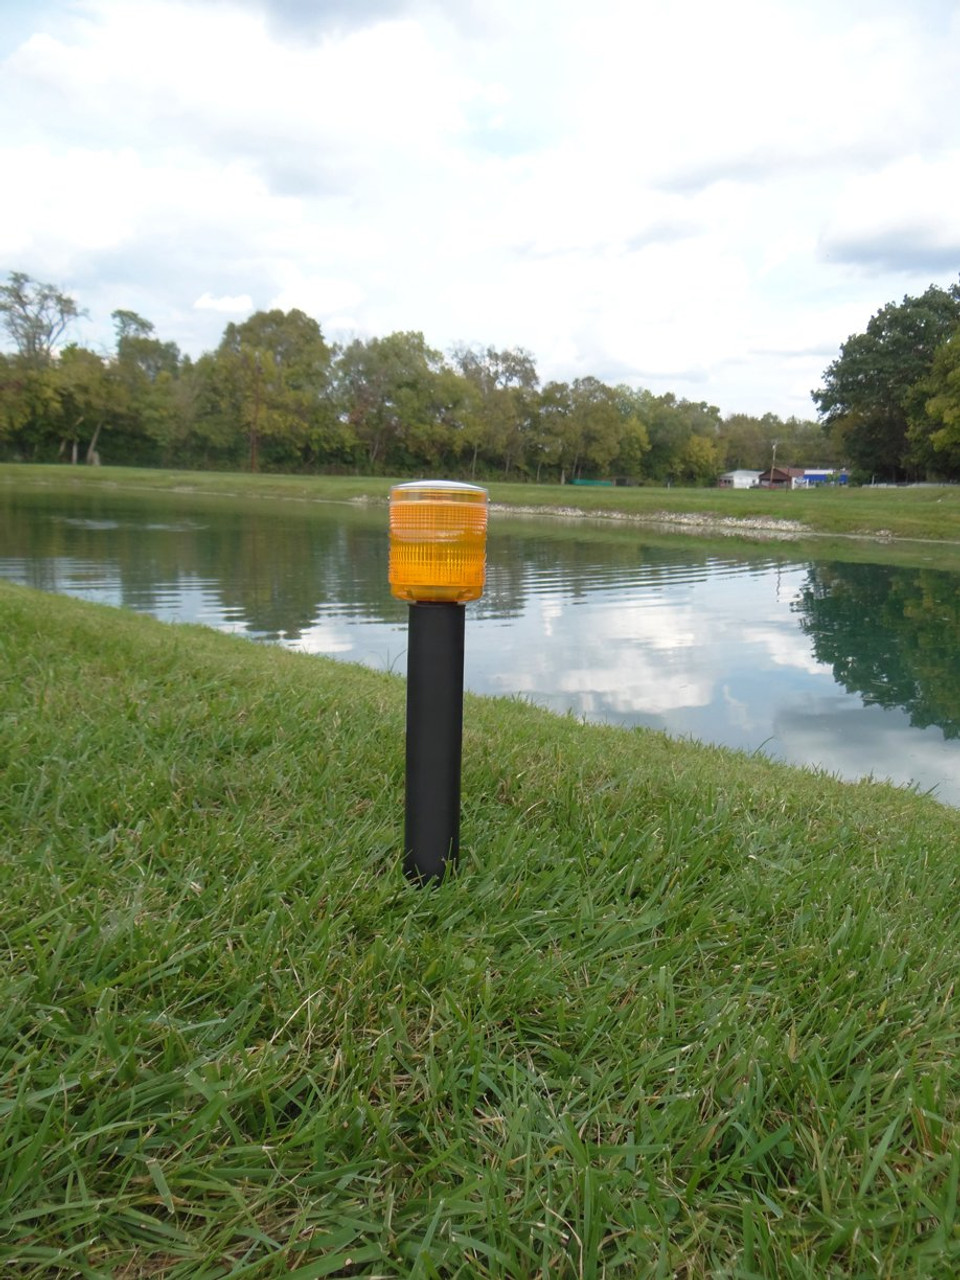 Goose Control Beacon - Do Away With Geese